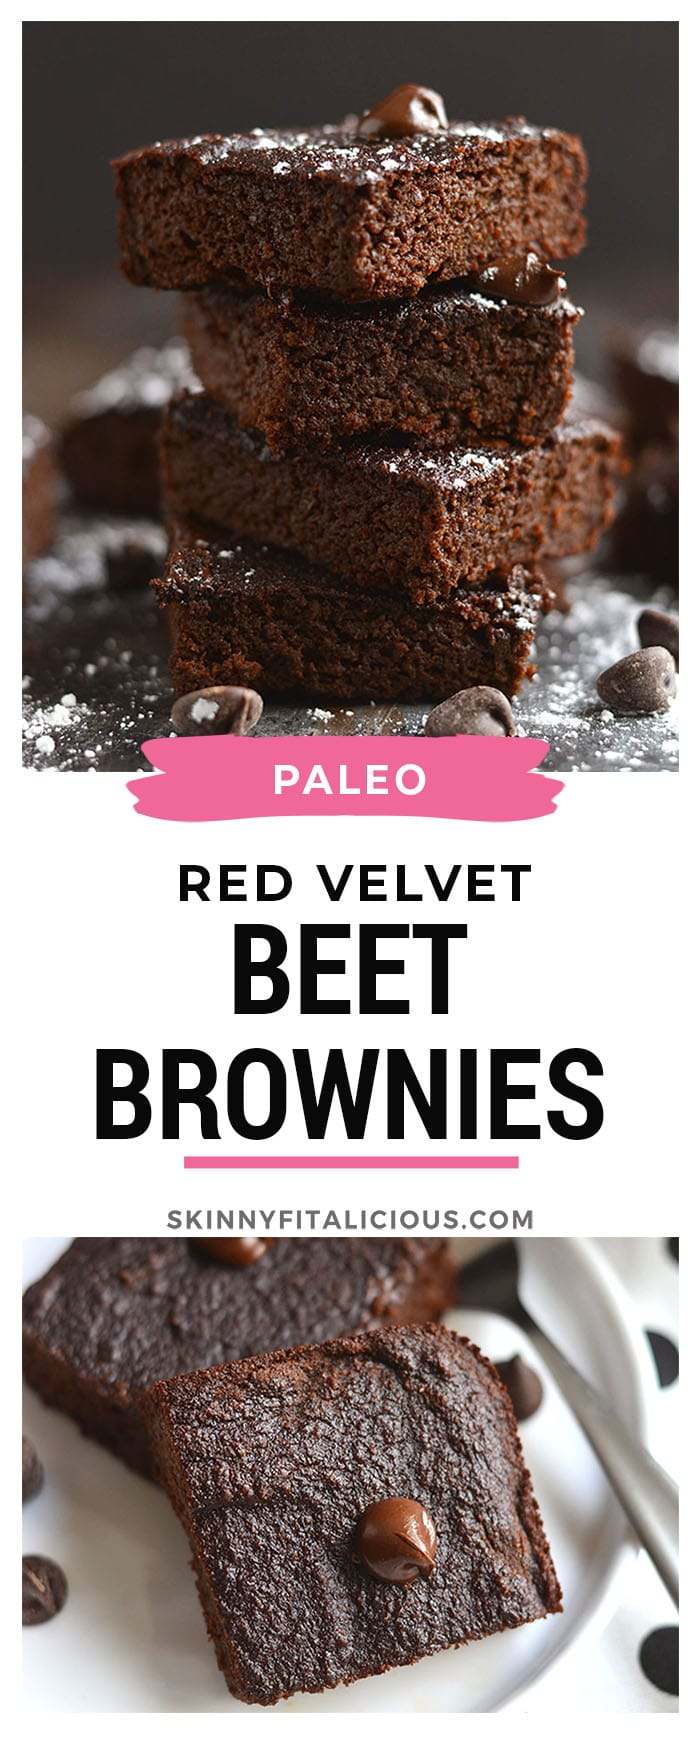 Luscious Red Velvet Beet Brownies! Made secretly healthy with beets, these brownies are rich, dark and chocolatey. Exactly the way brownies are meant, only healthier and a weight loss friendly recipe! Gluten Free + Low Calorie + Paleo